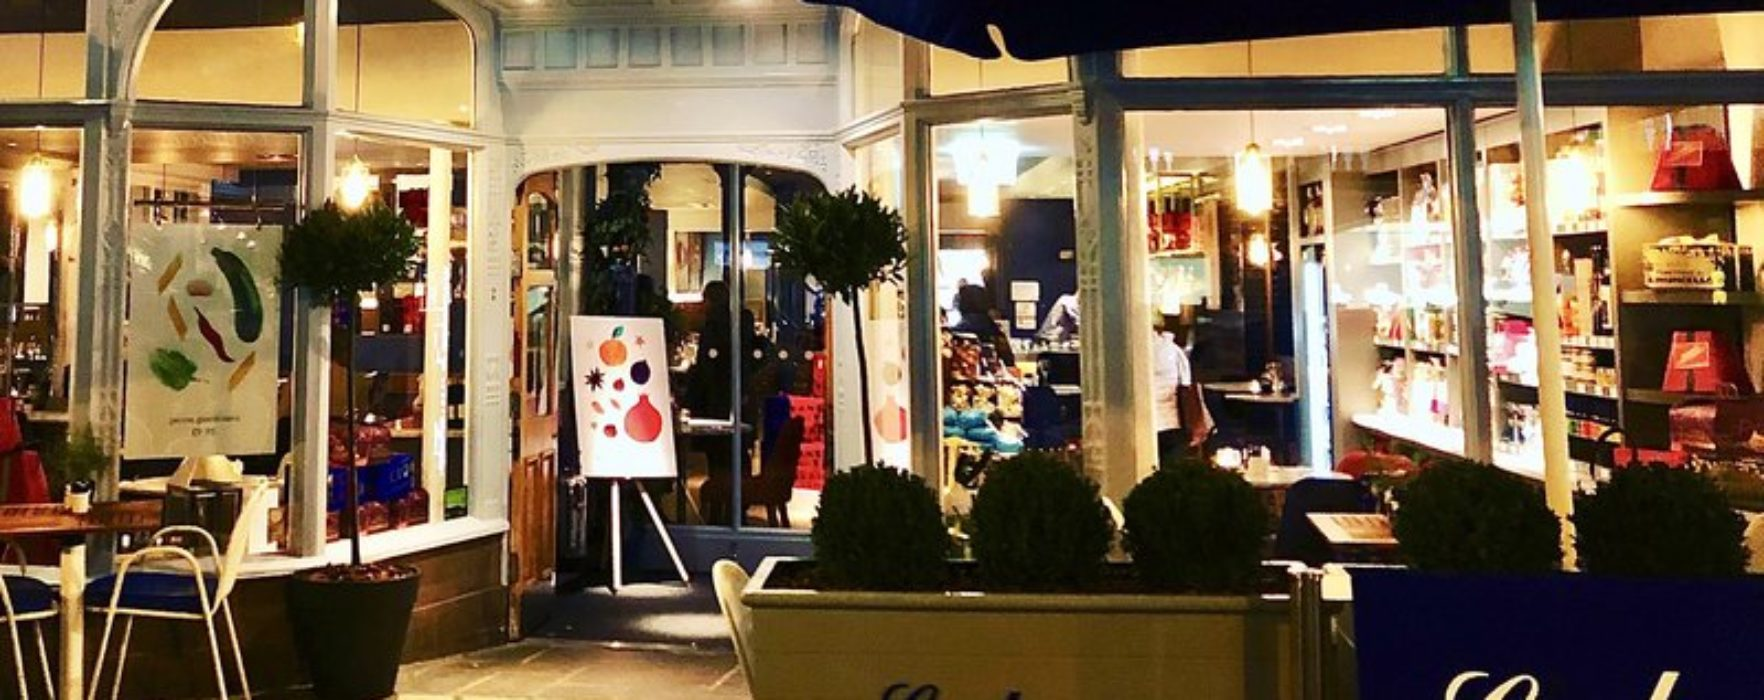 CHESHIRE: Carluccio's Chester relaunches with a fresh new look and brand new menu